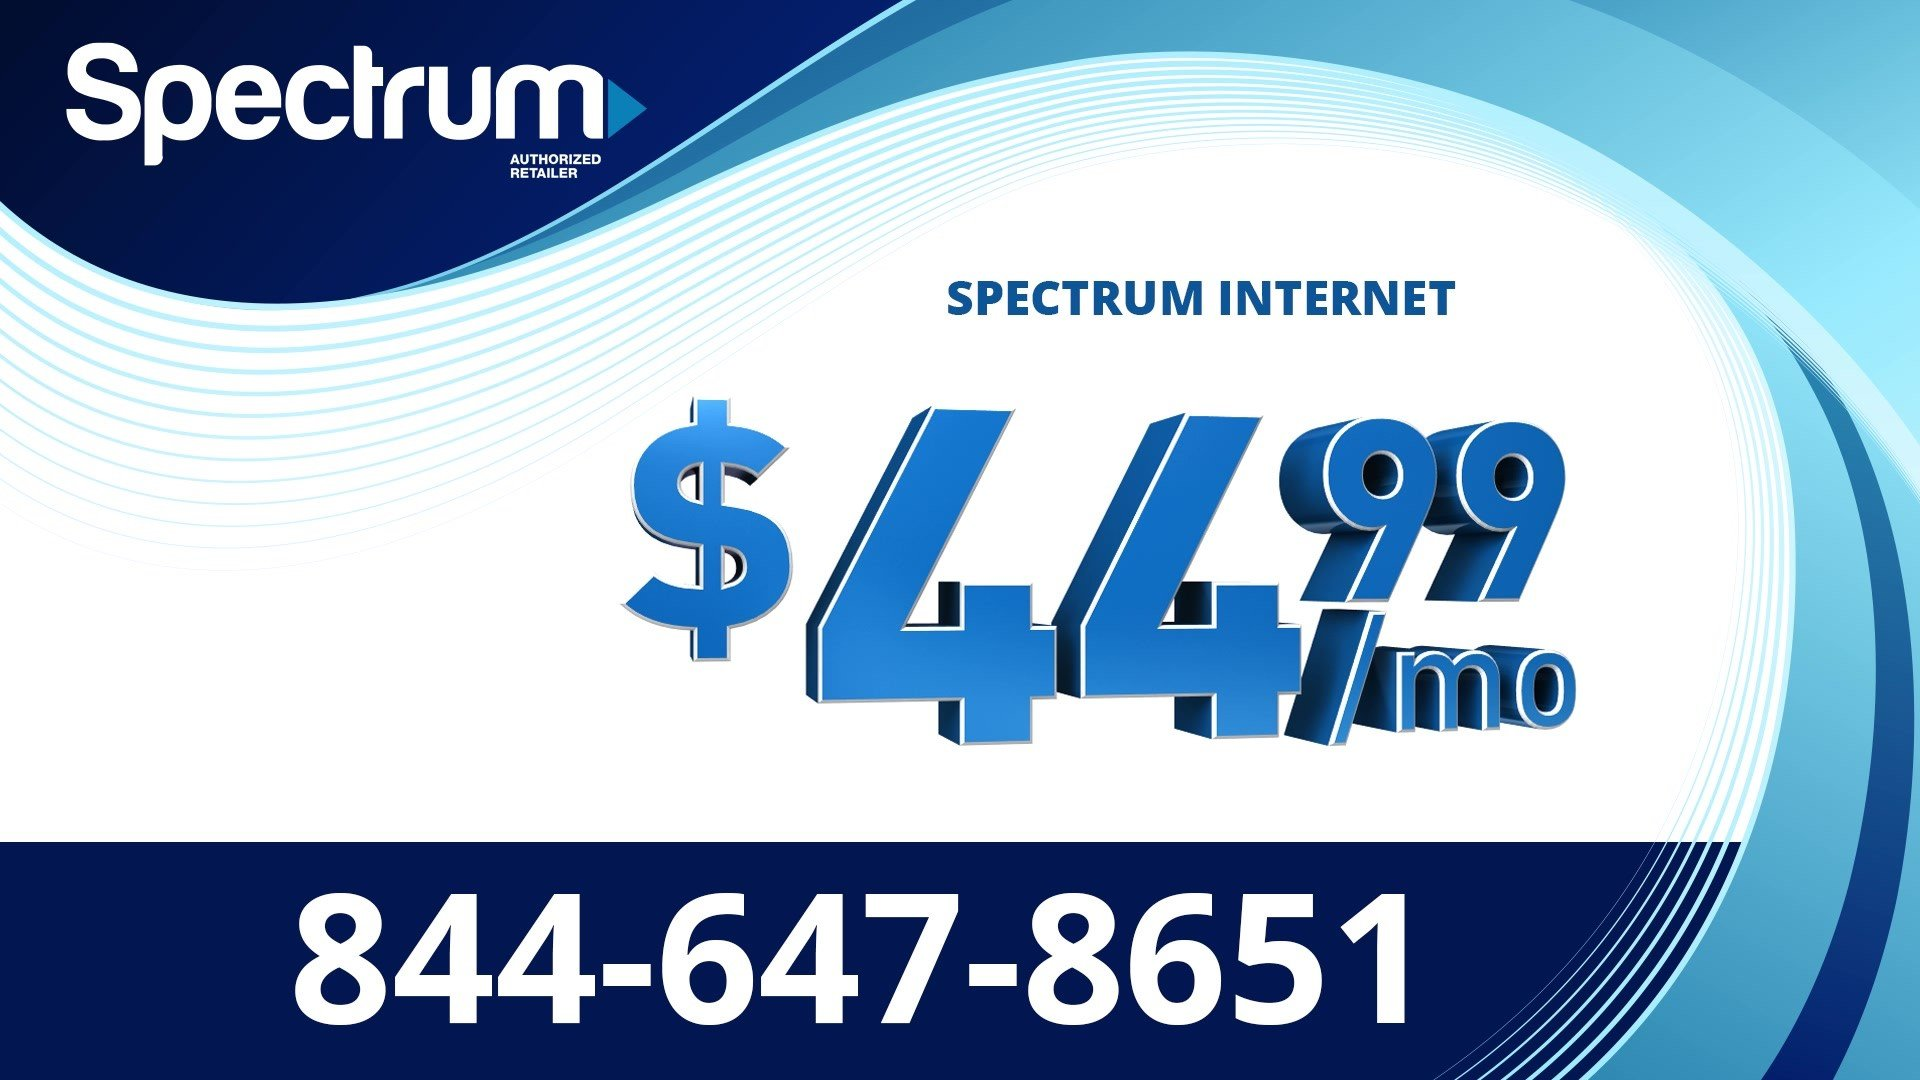 Spectrum Internet - Fort Worth - Give Us a Call at 844-647-6614